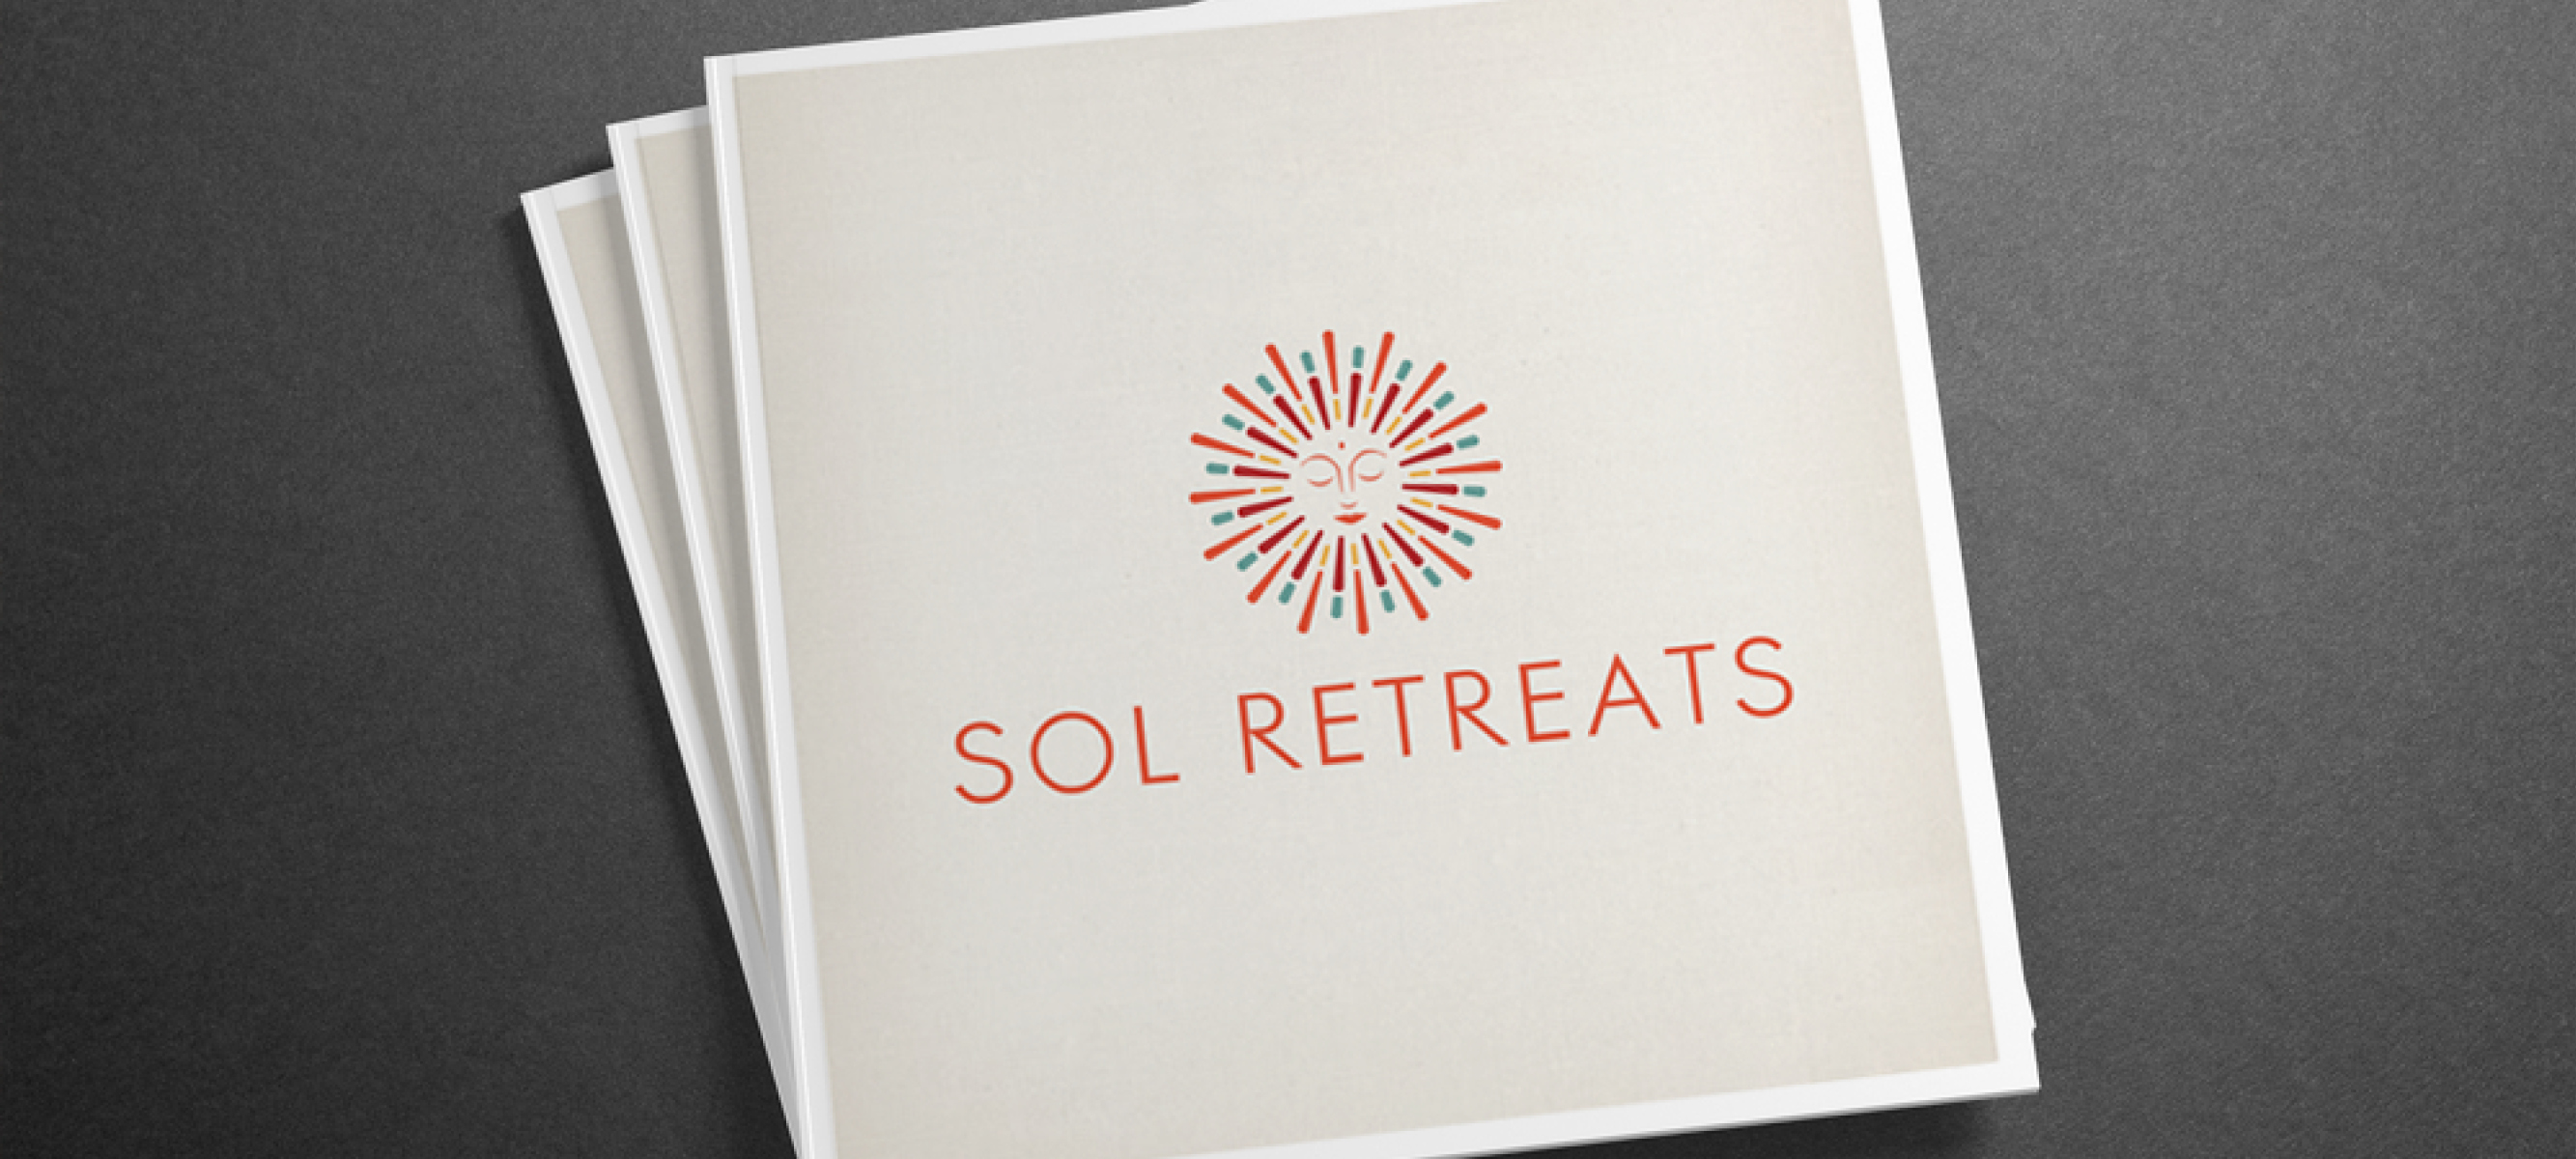 SOL RETREATS + ALOKA YOGA